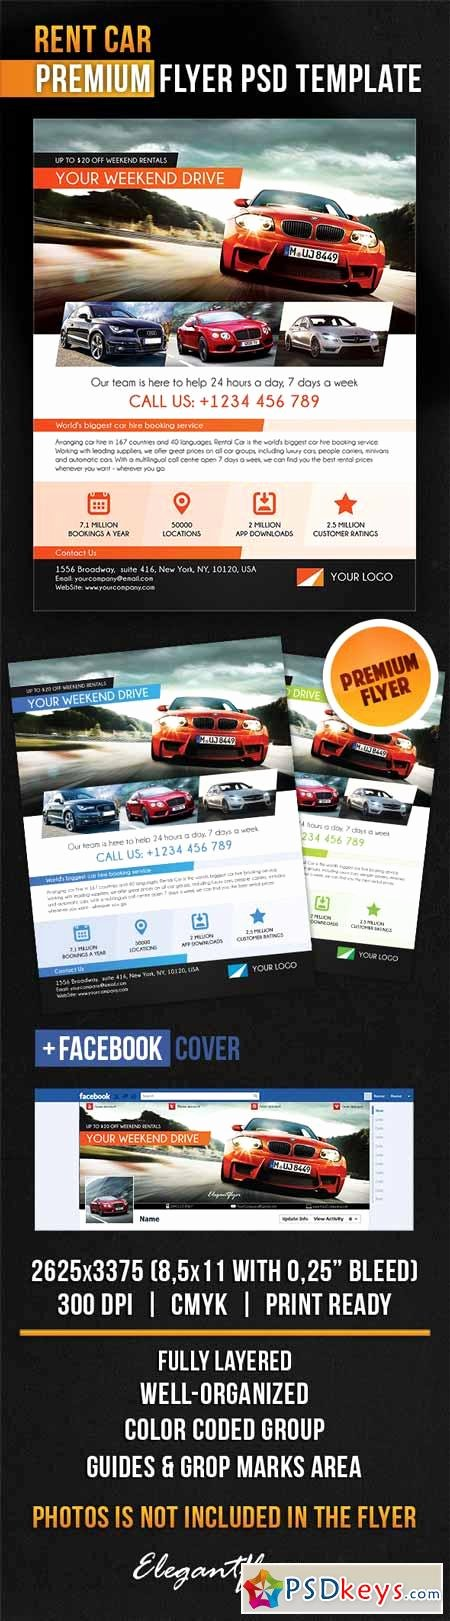 Rent Car – Flyer Psd Template Cover Free